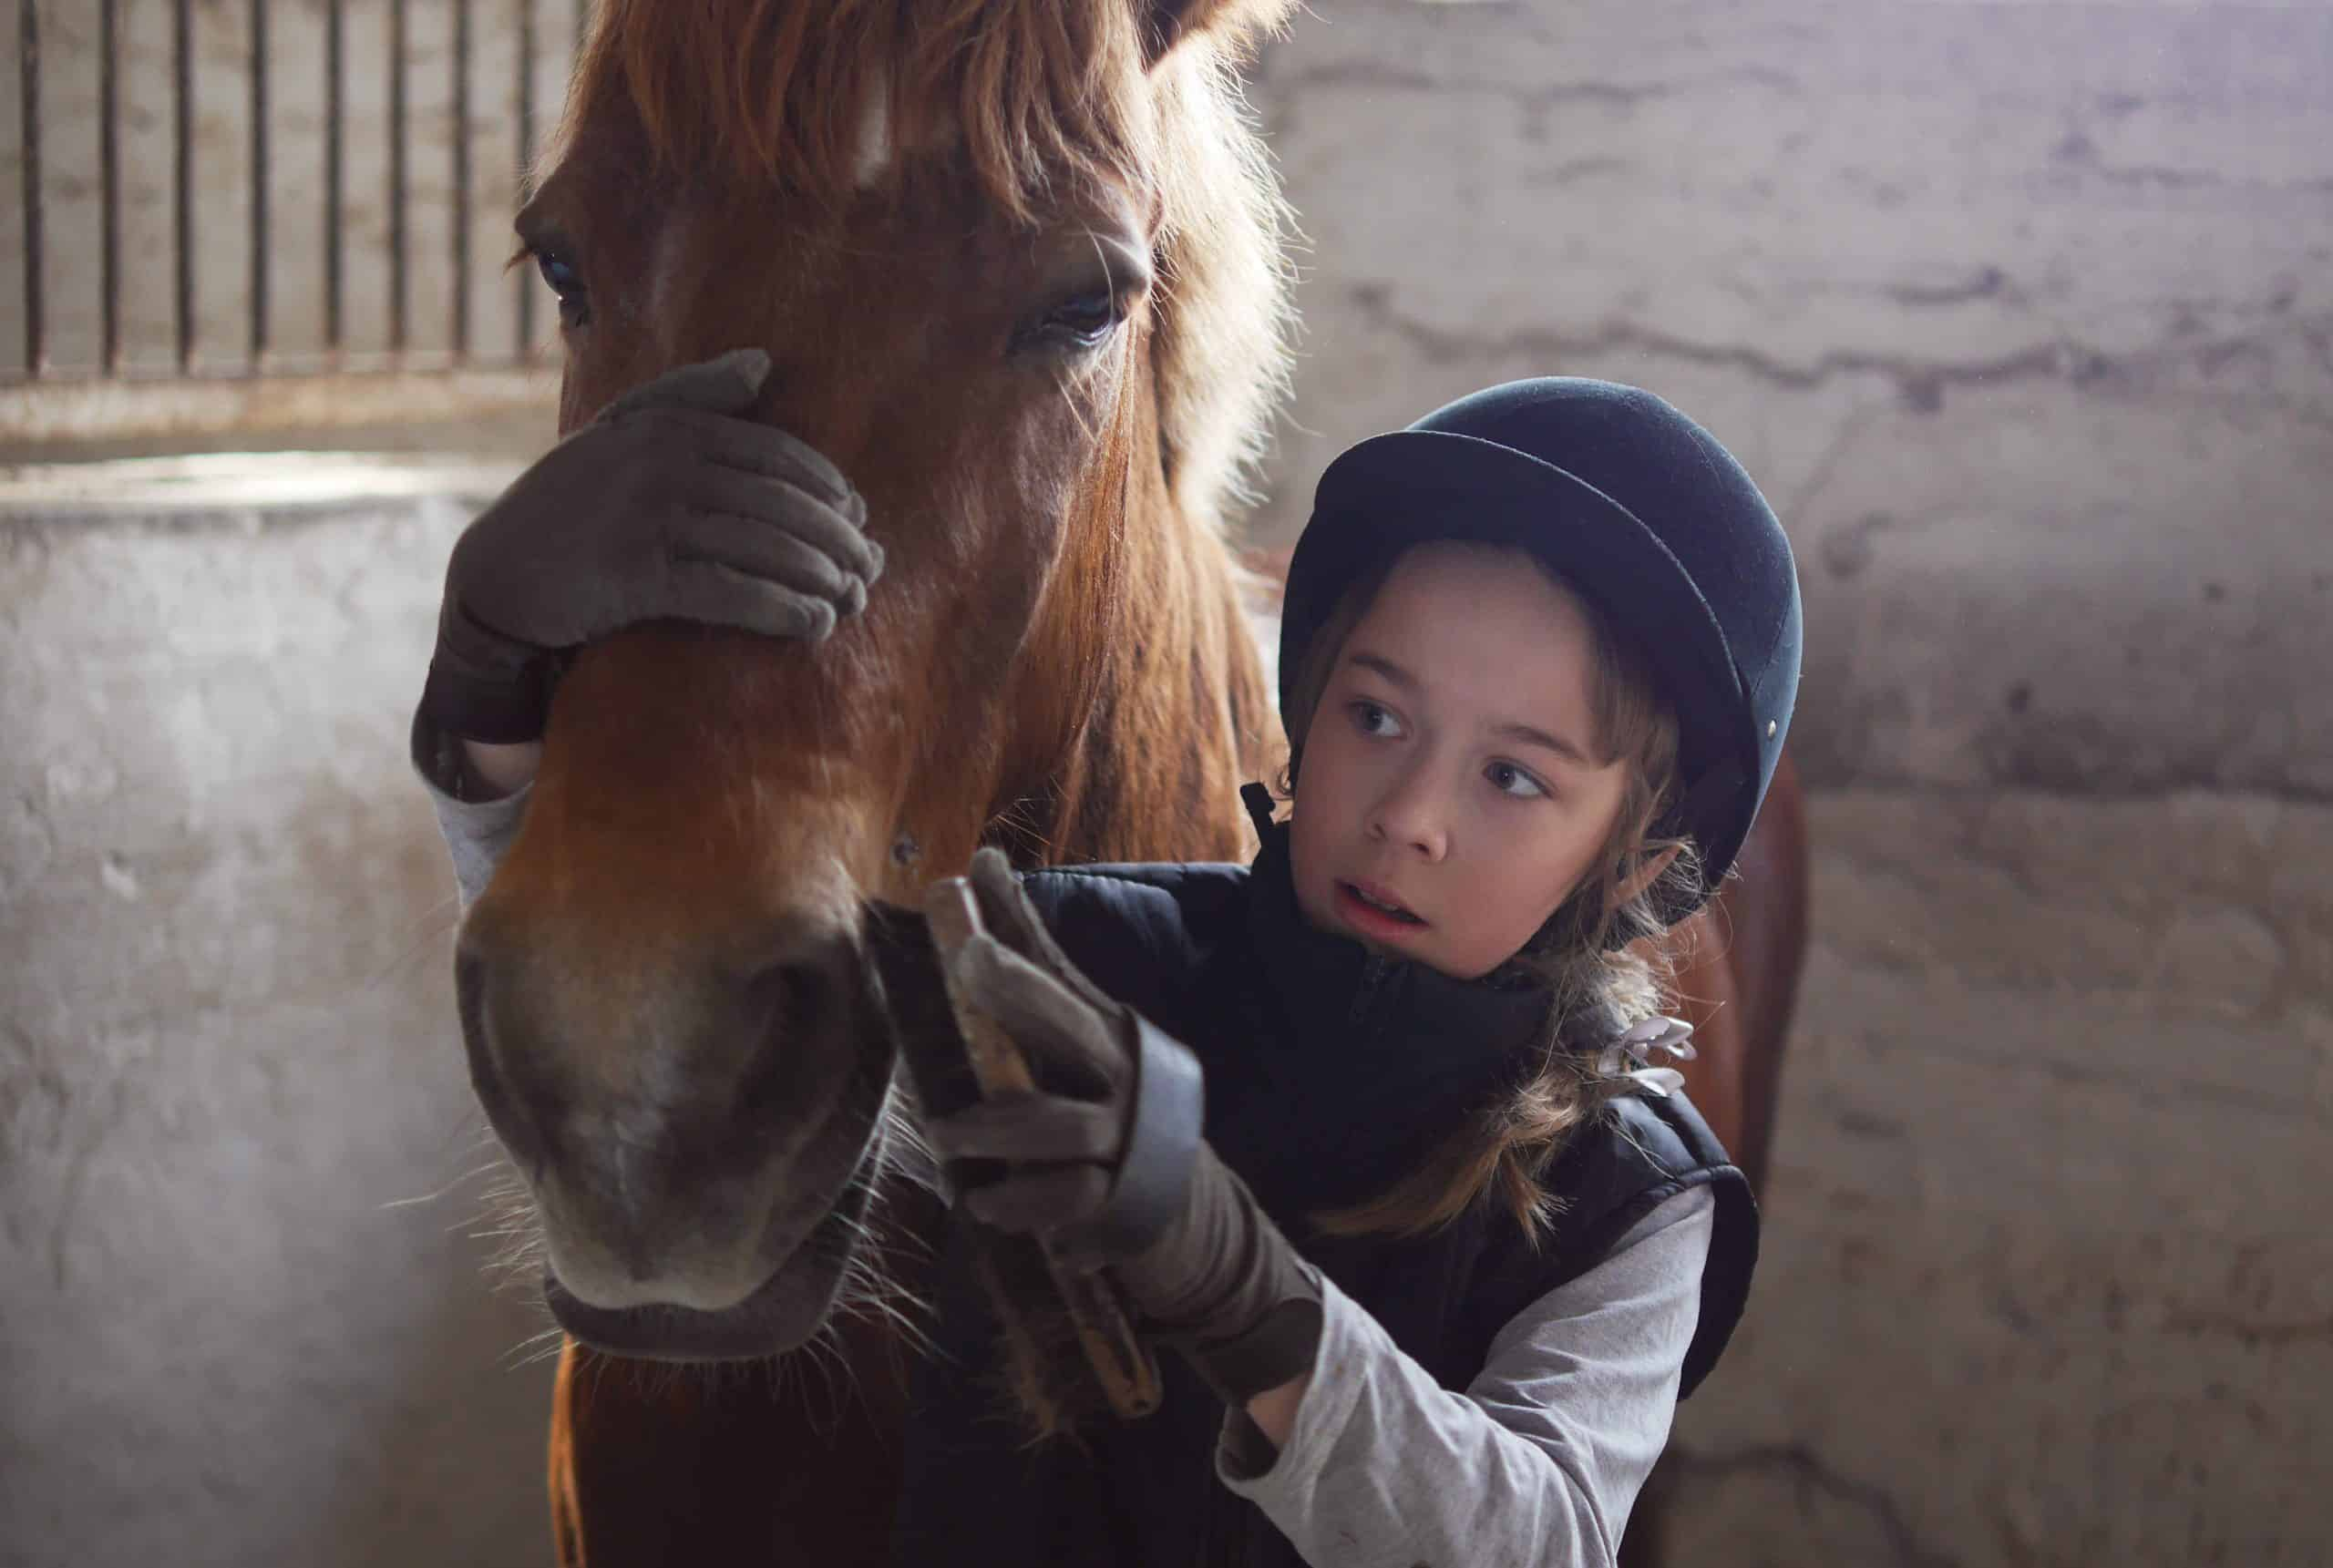 Girl brushing her horse. The care of horses. The child brushes the horse's face with a brush.